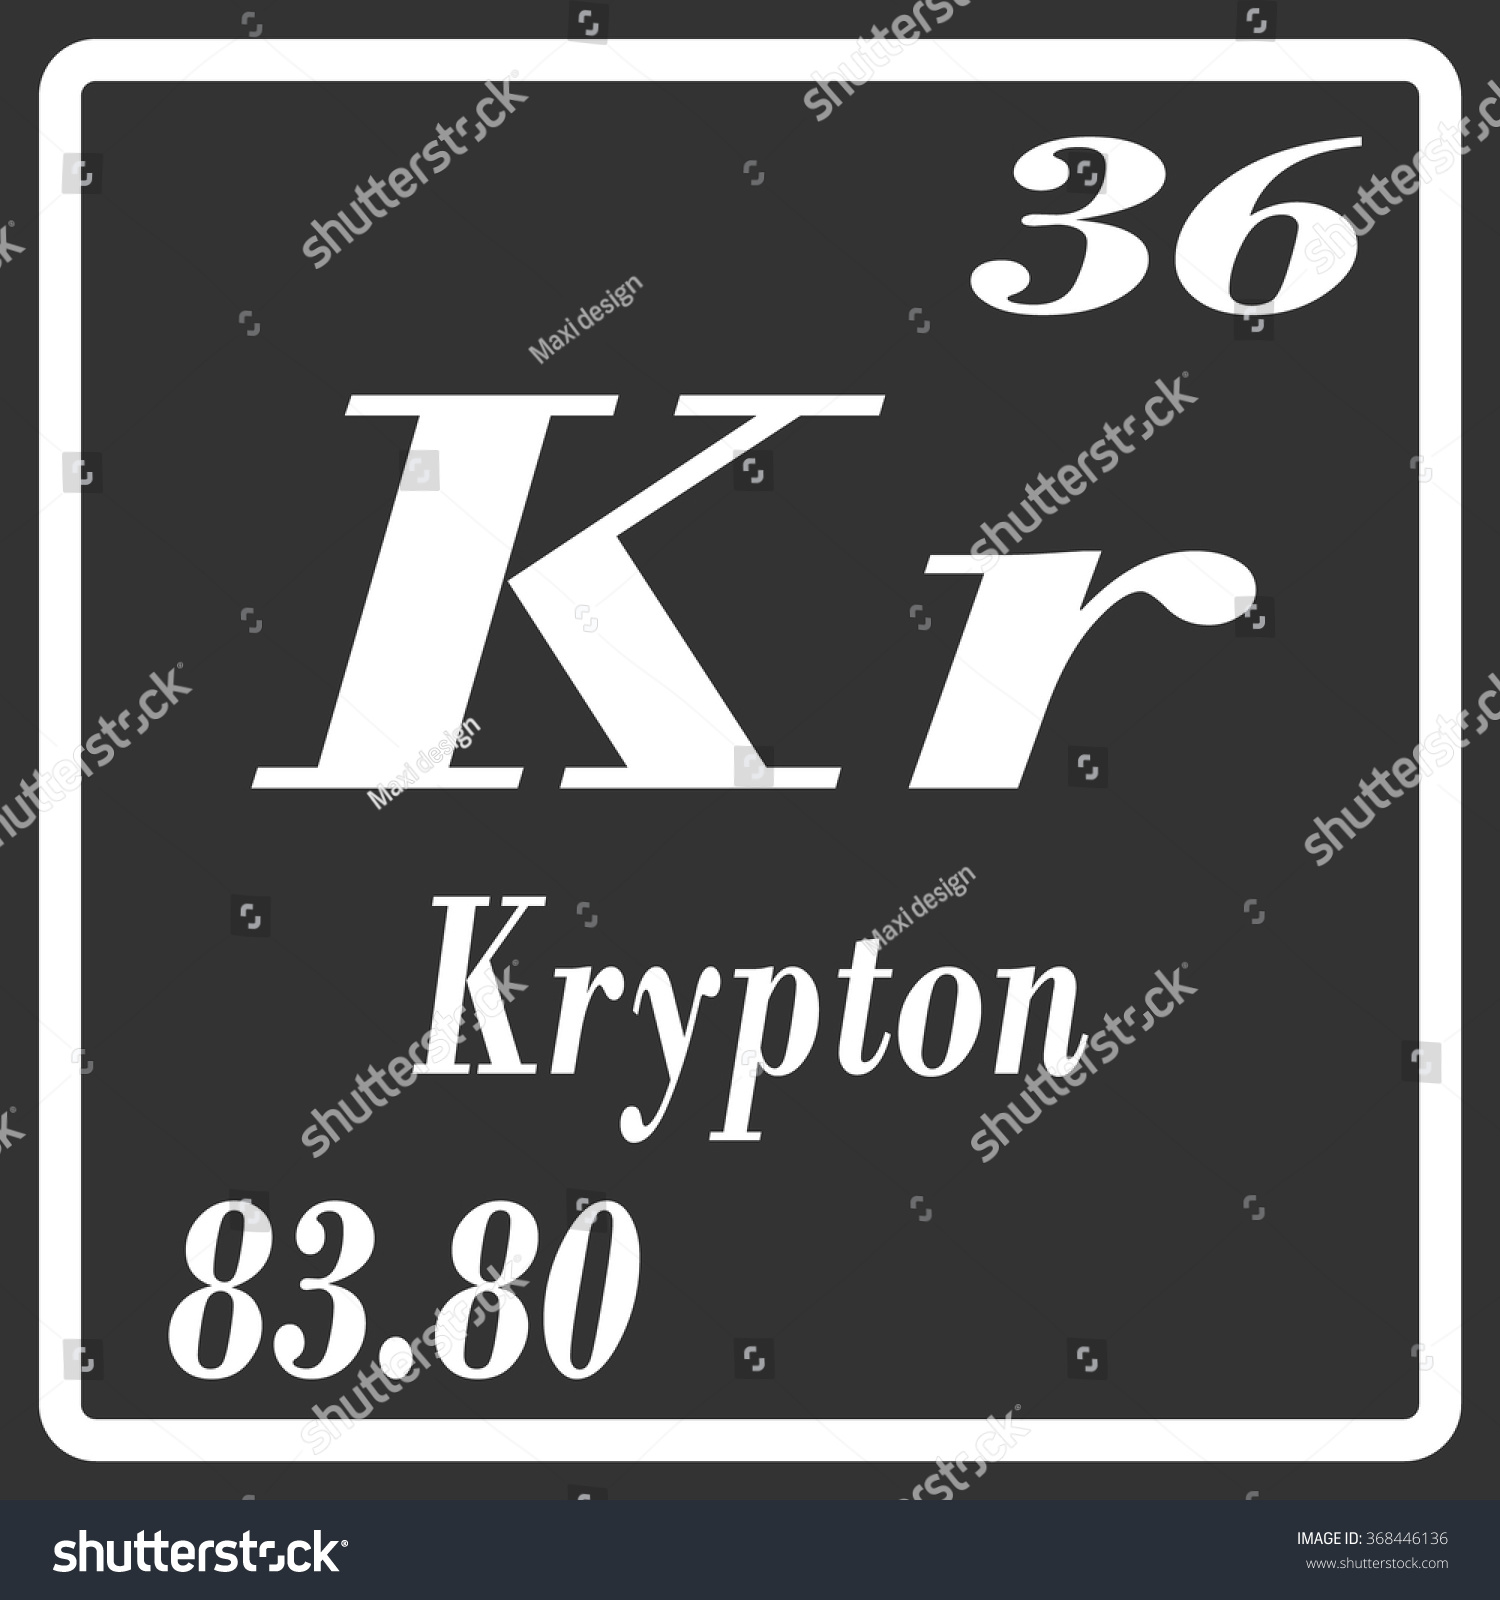 Periodic table krypton images periodic table images krypton periodic table image collections periodic table images krypton periodic table images periodic table images periodic gamestrikefo Choice Image